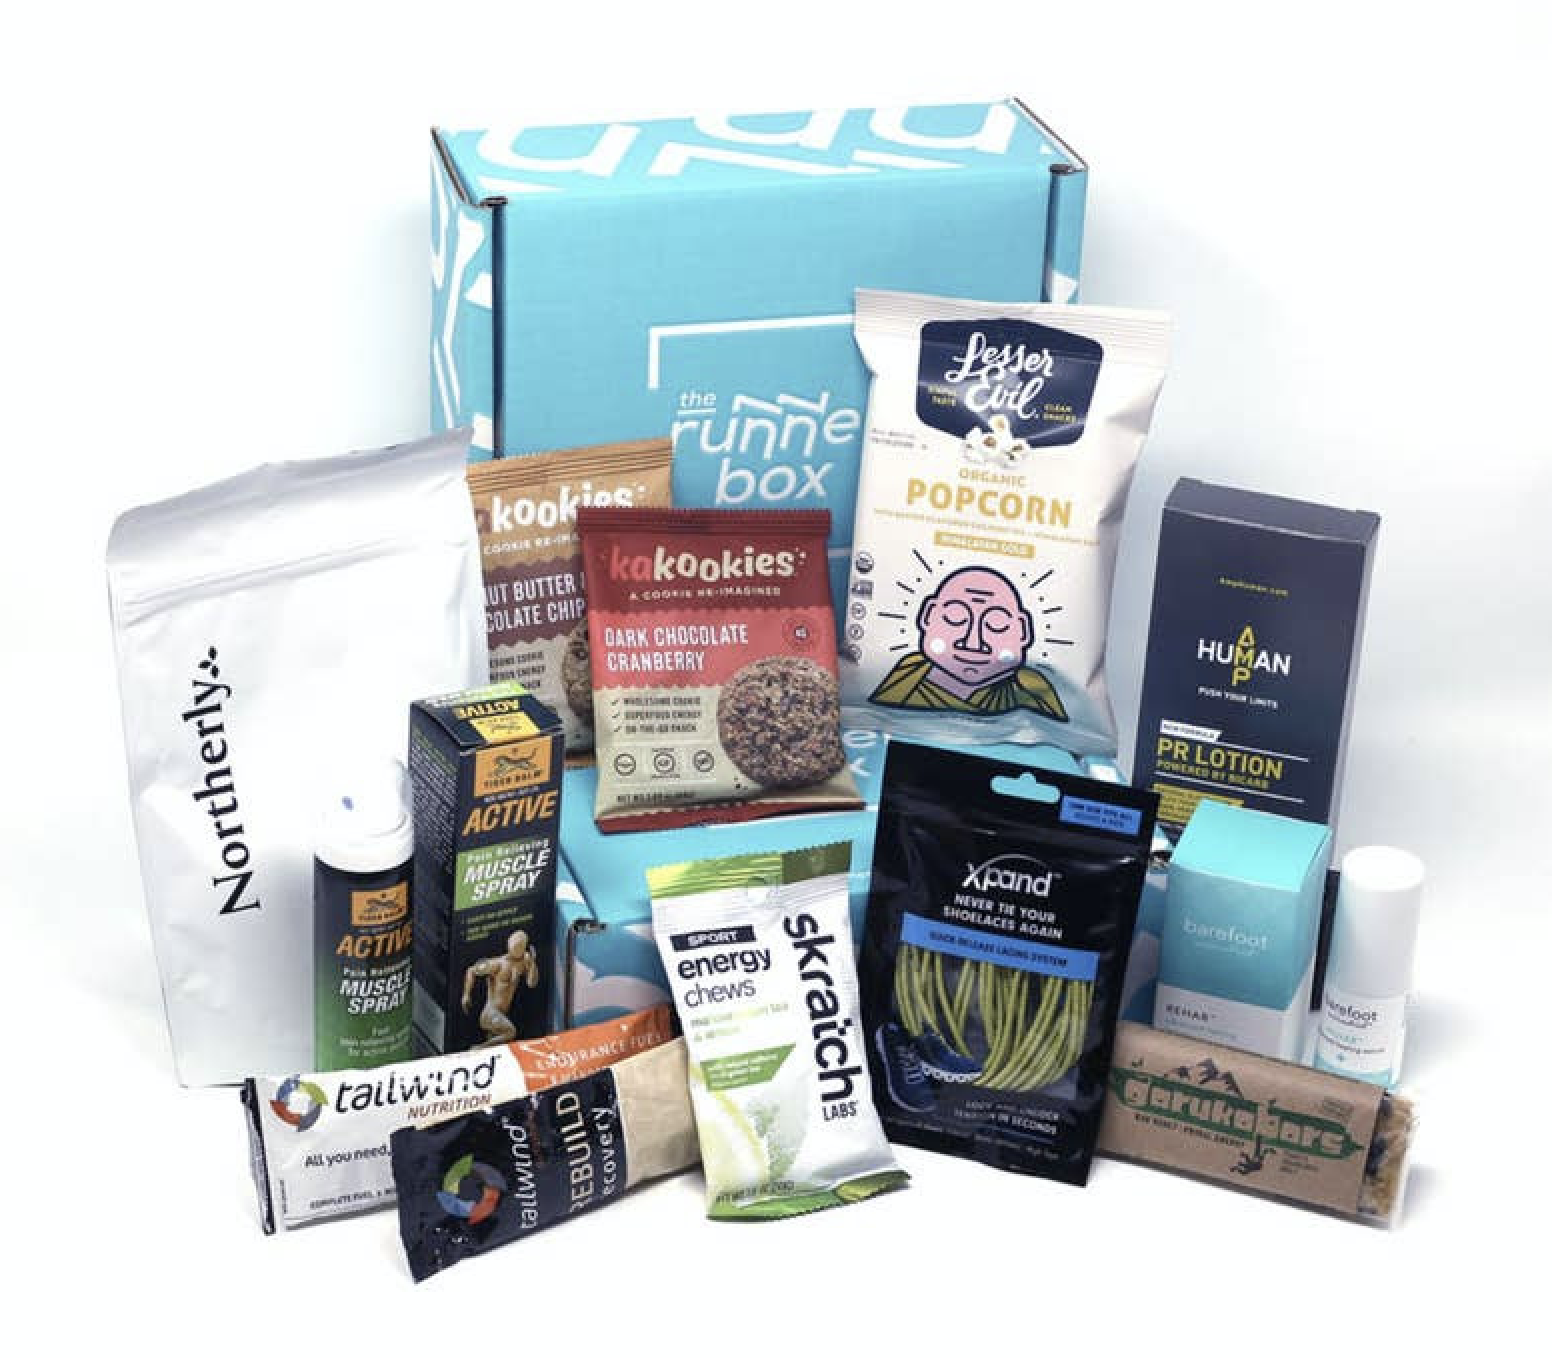 "A blue box that says ""The RunnerBox"" with snacks and running accessories in front of it including a white package that says ""Lesser Evil Organic Popcorn"" and a bottle that says ""Tiger Balm Active Muscle Spray"""